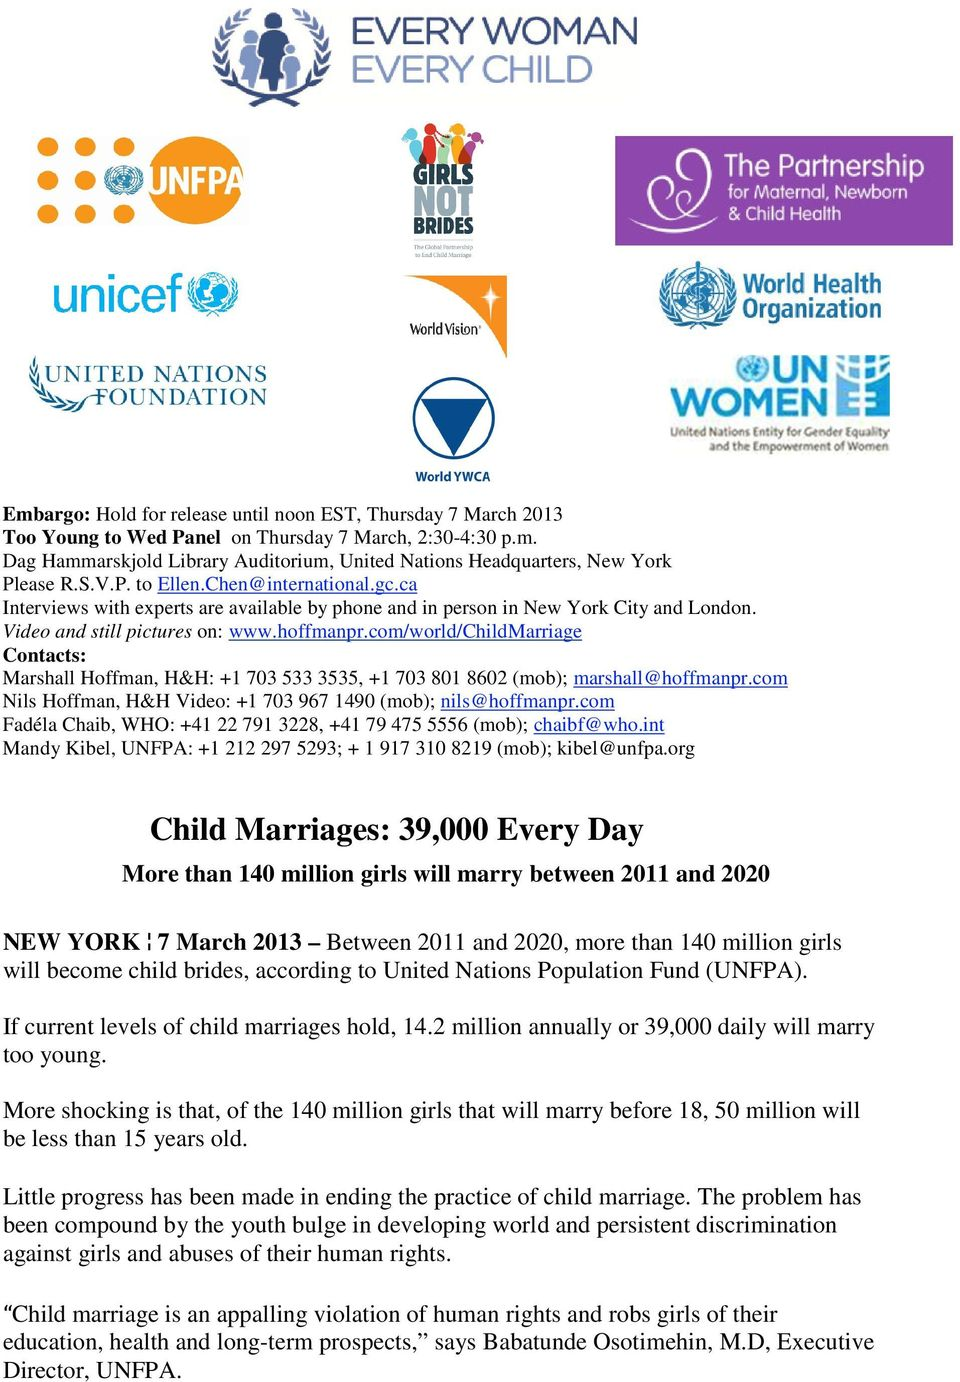 com/world/childmarriage Contacts: Marshall Hoffman, H&H: +1 703 533 3535, +1 703 801 8602 (mob); marshall@hoffmanpr.com Nils Hoffman, H&H Video: +1 703 967 1490 (mob); nils@hoffmanpr.